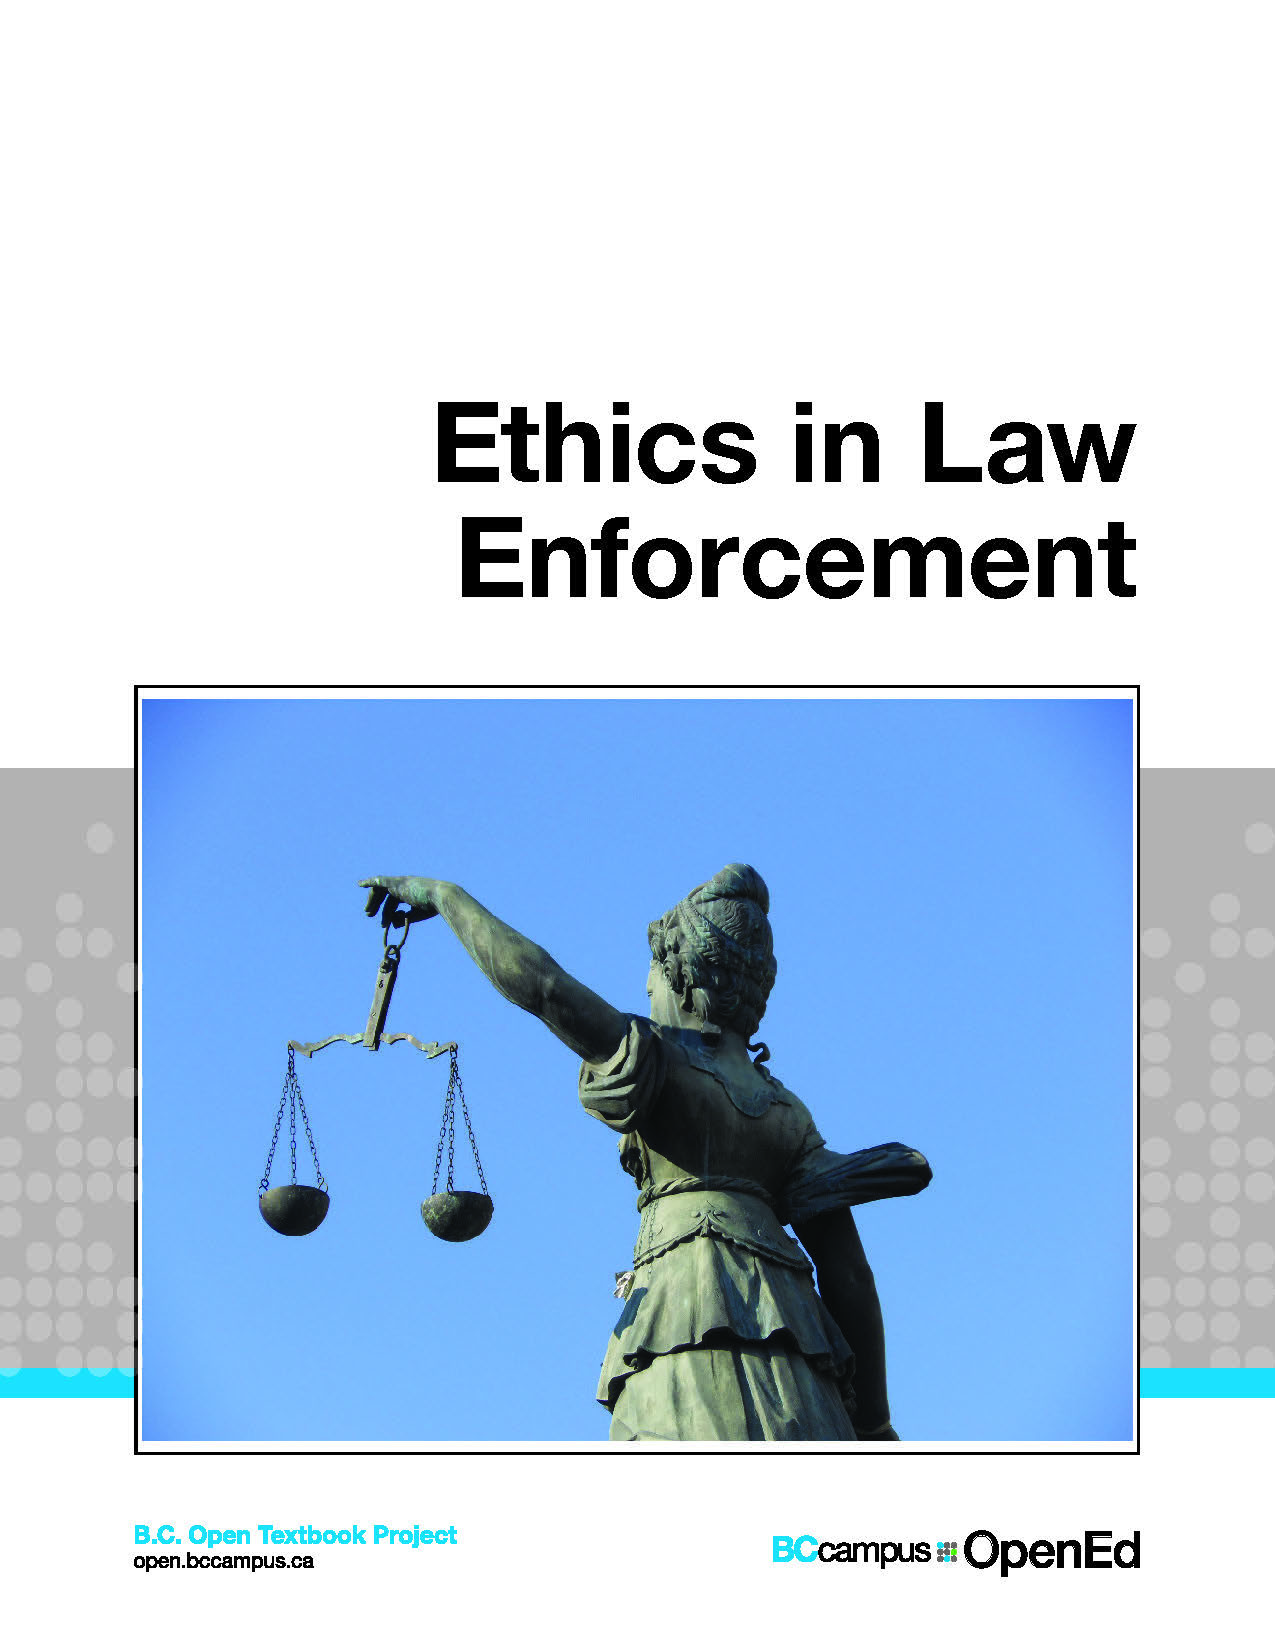 Cover image for Ethicsin Law Enforcement-McCartney